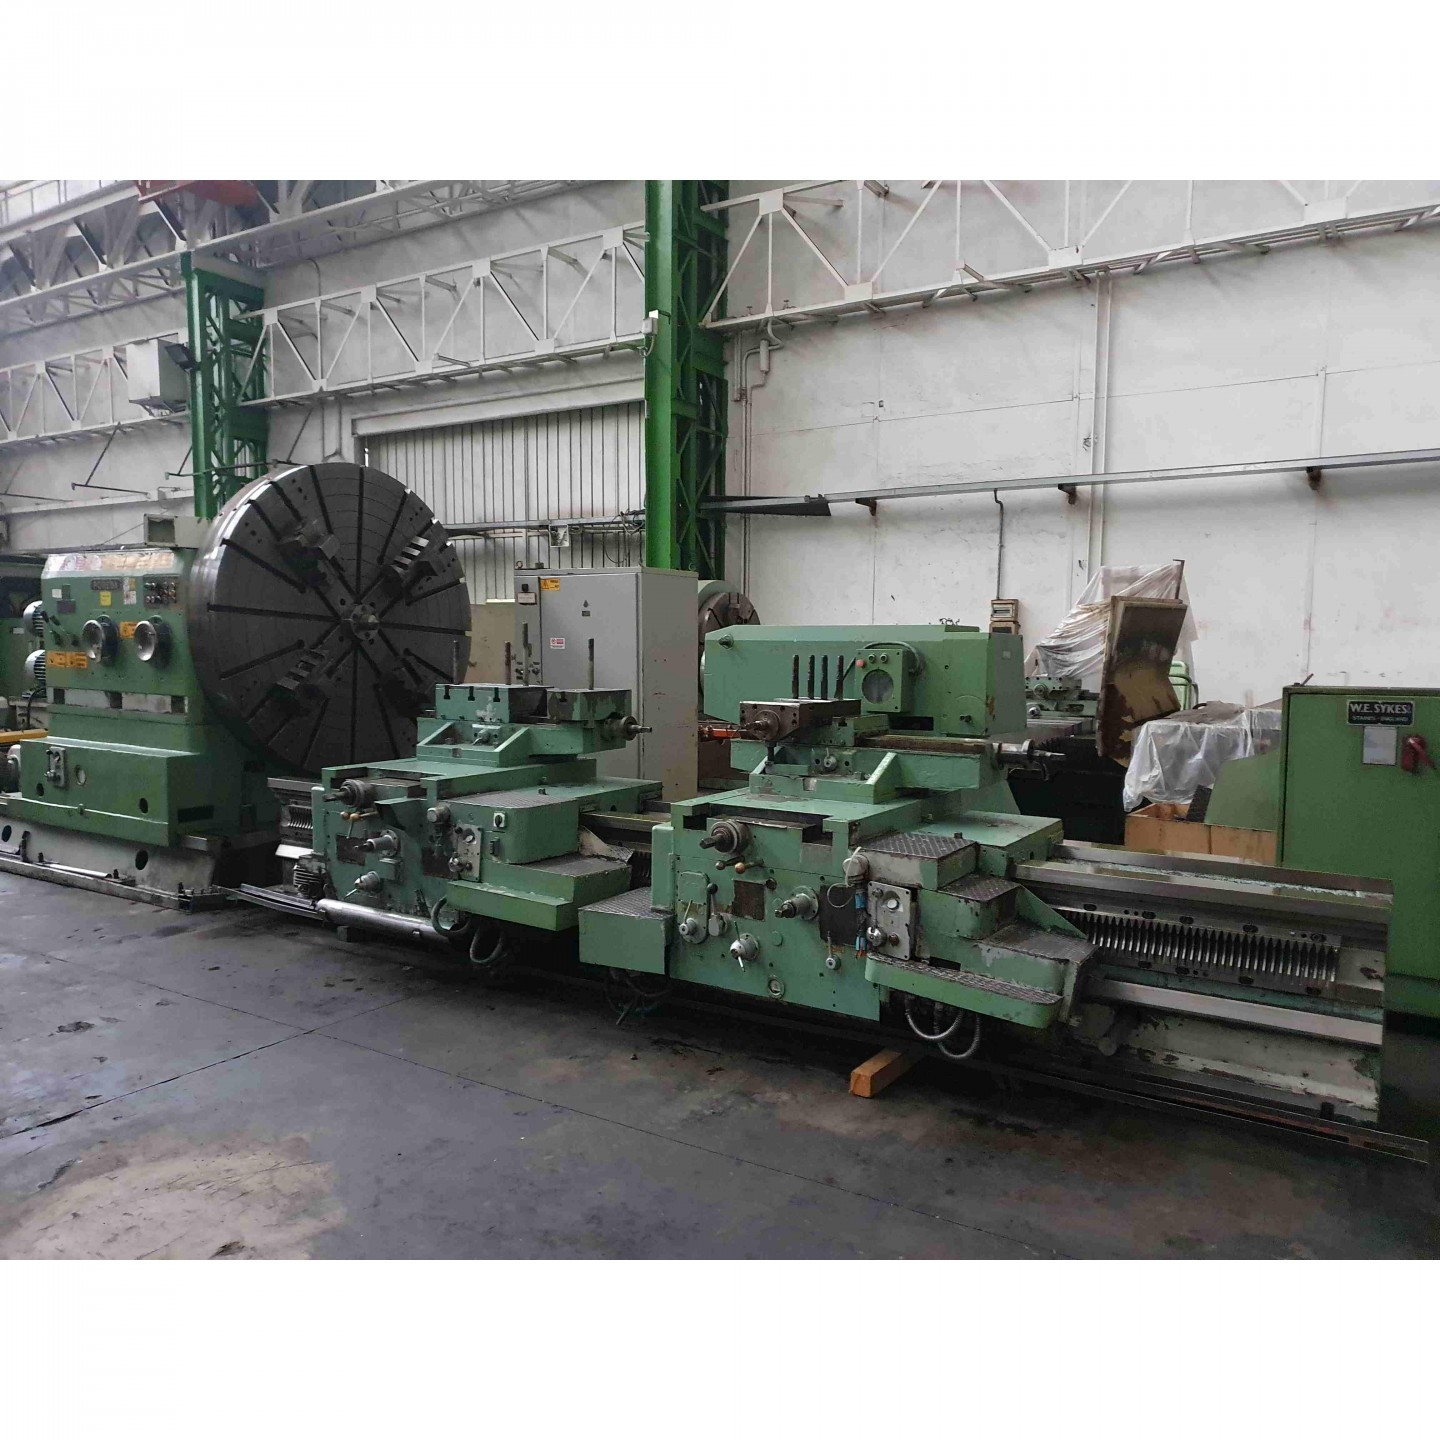 POREBA TZB 250 B - FACING LATHE